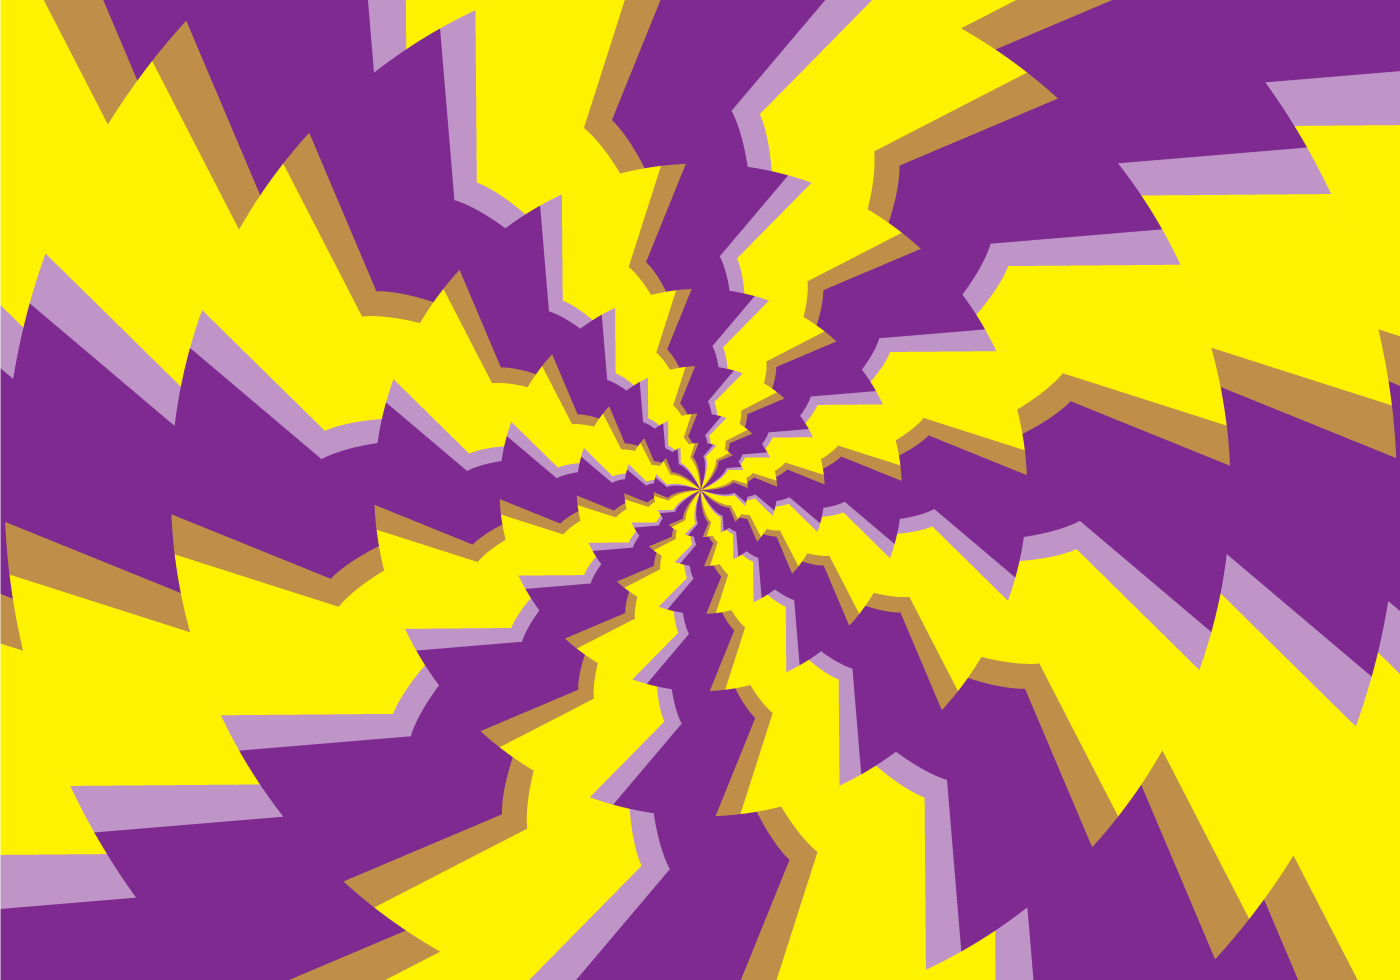 Psychedelic Round Hypnosis Illusion - Download Free Vector Art ...